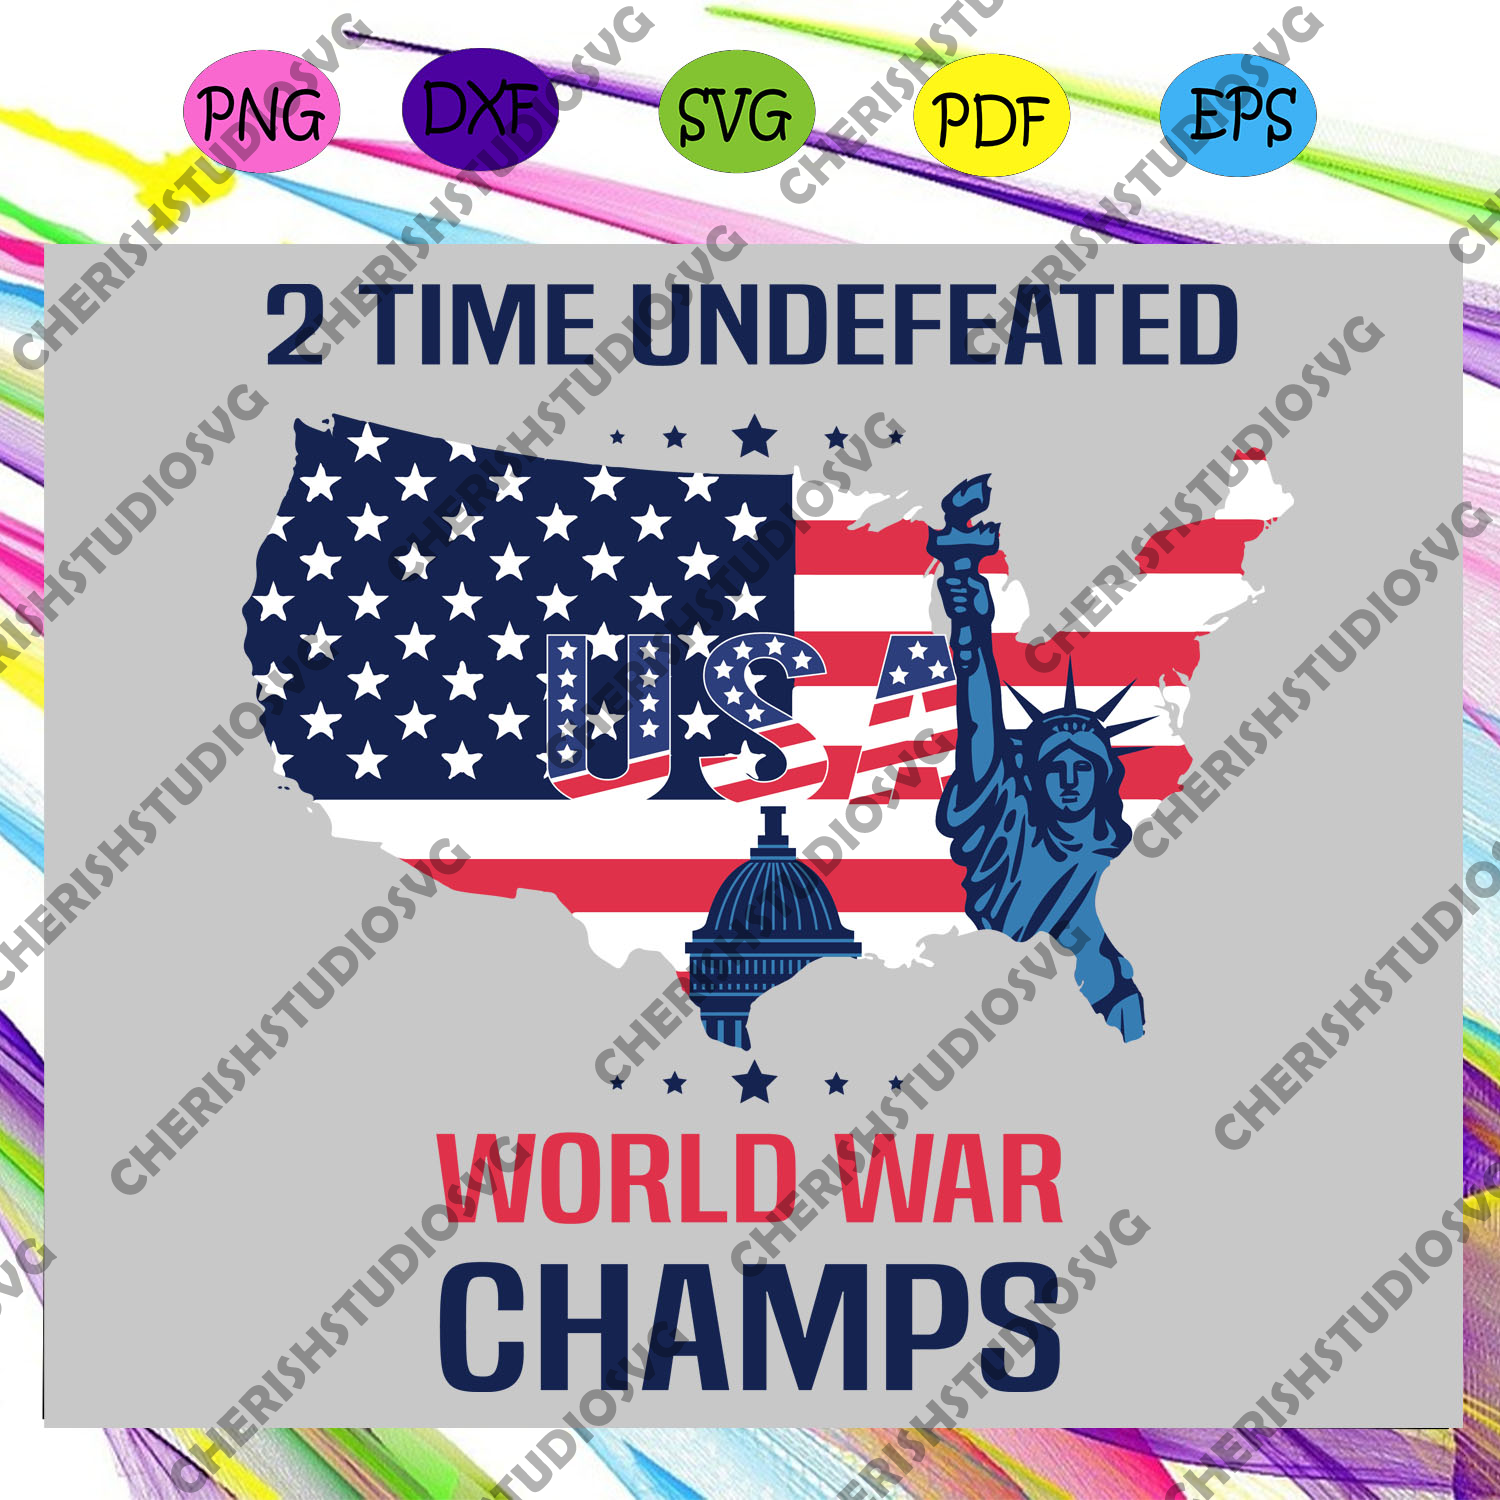 2 time undefeated world war champs, 4th Of July Svg, American Flag Svg, Fourth Of July Svg, America Svg, Patriotic American Svg, Independence Day Svg, Memorial Day, Files For Silhouette, Files For Cricut, SVG, DXF, EPS, PNG, Instant Download